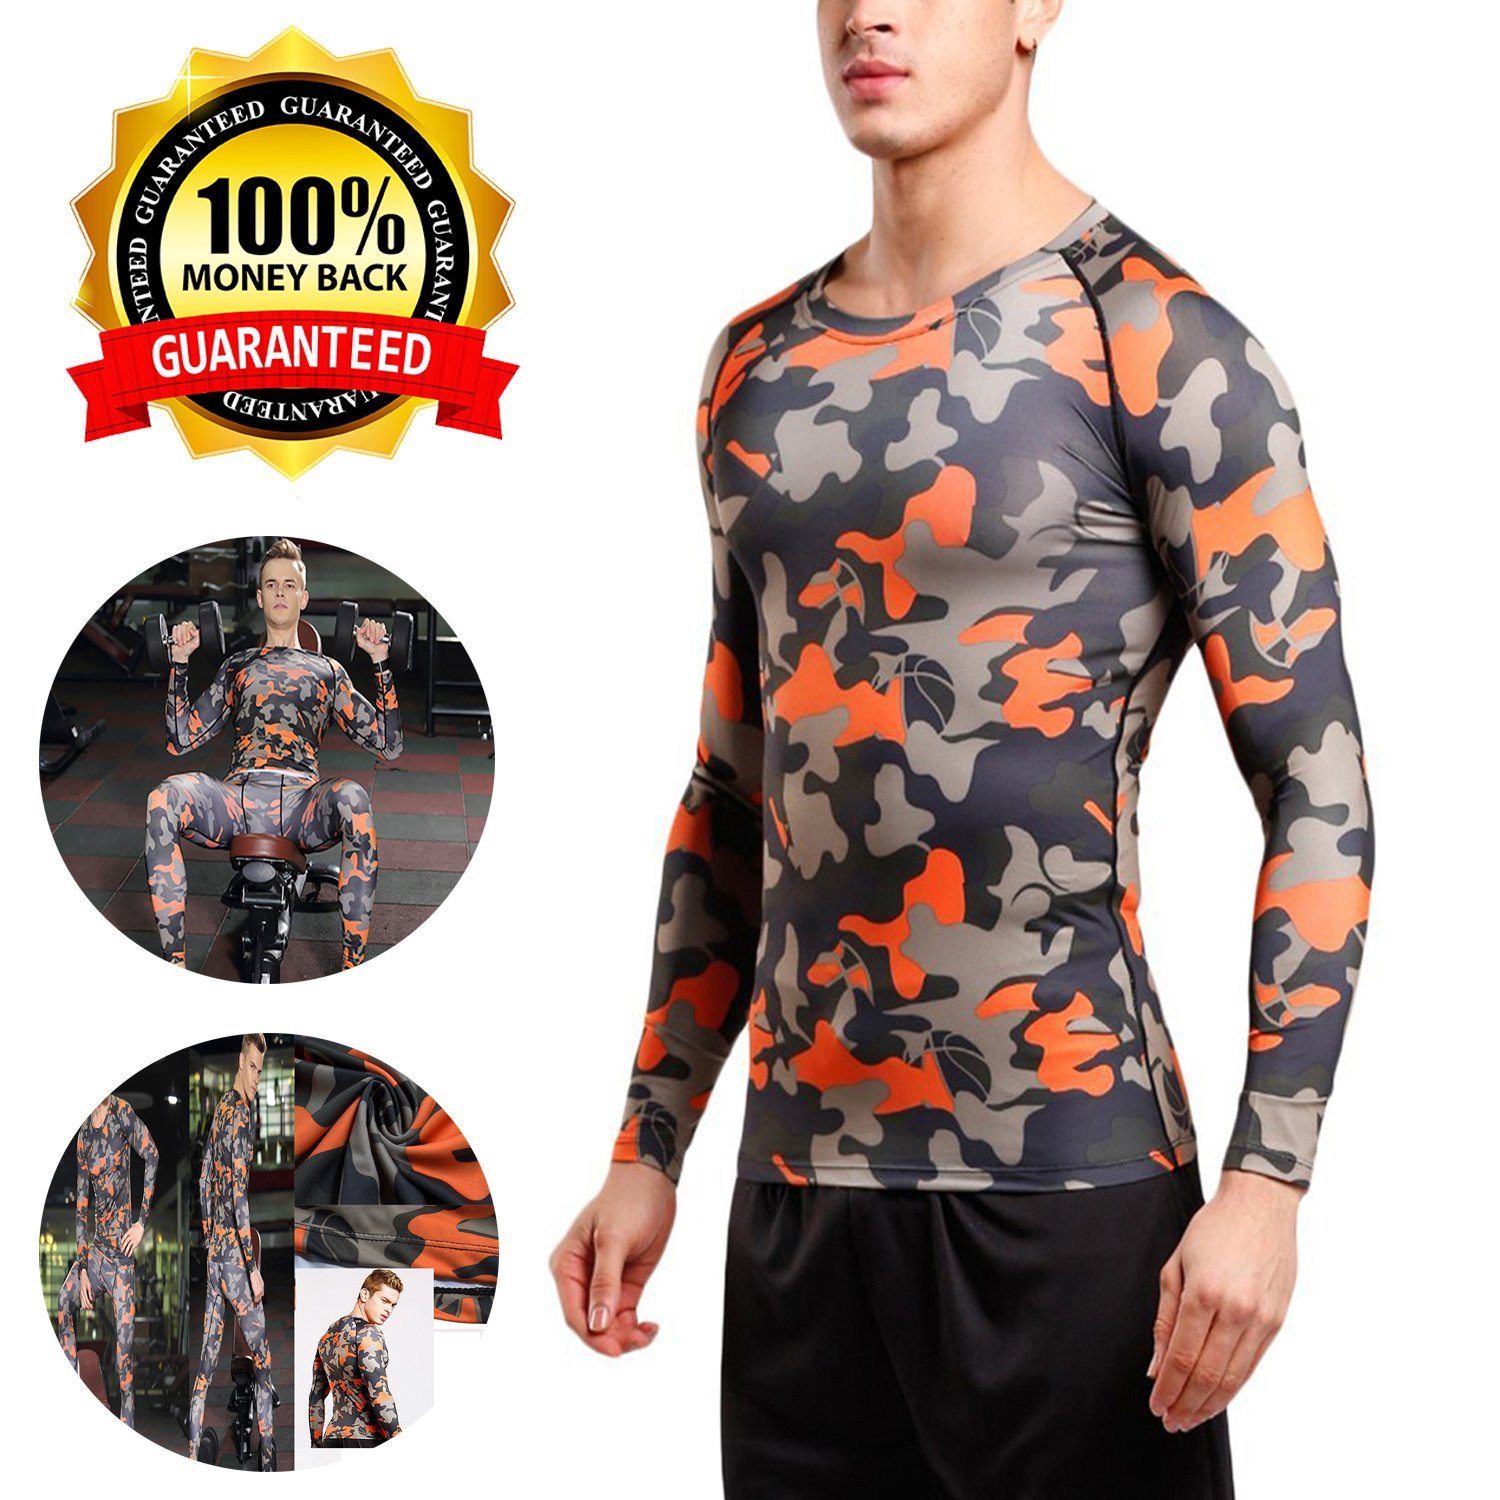 Smart Summer World Cristiano Ronaldo Mens T-shirt Man T Shirt Summer Child Bodybuilding T-shirt Survetement Footbal Cup To Reduce Body Weight And Prolong Life Home